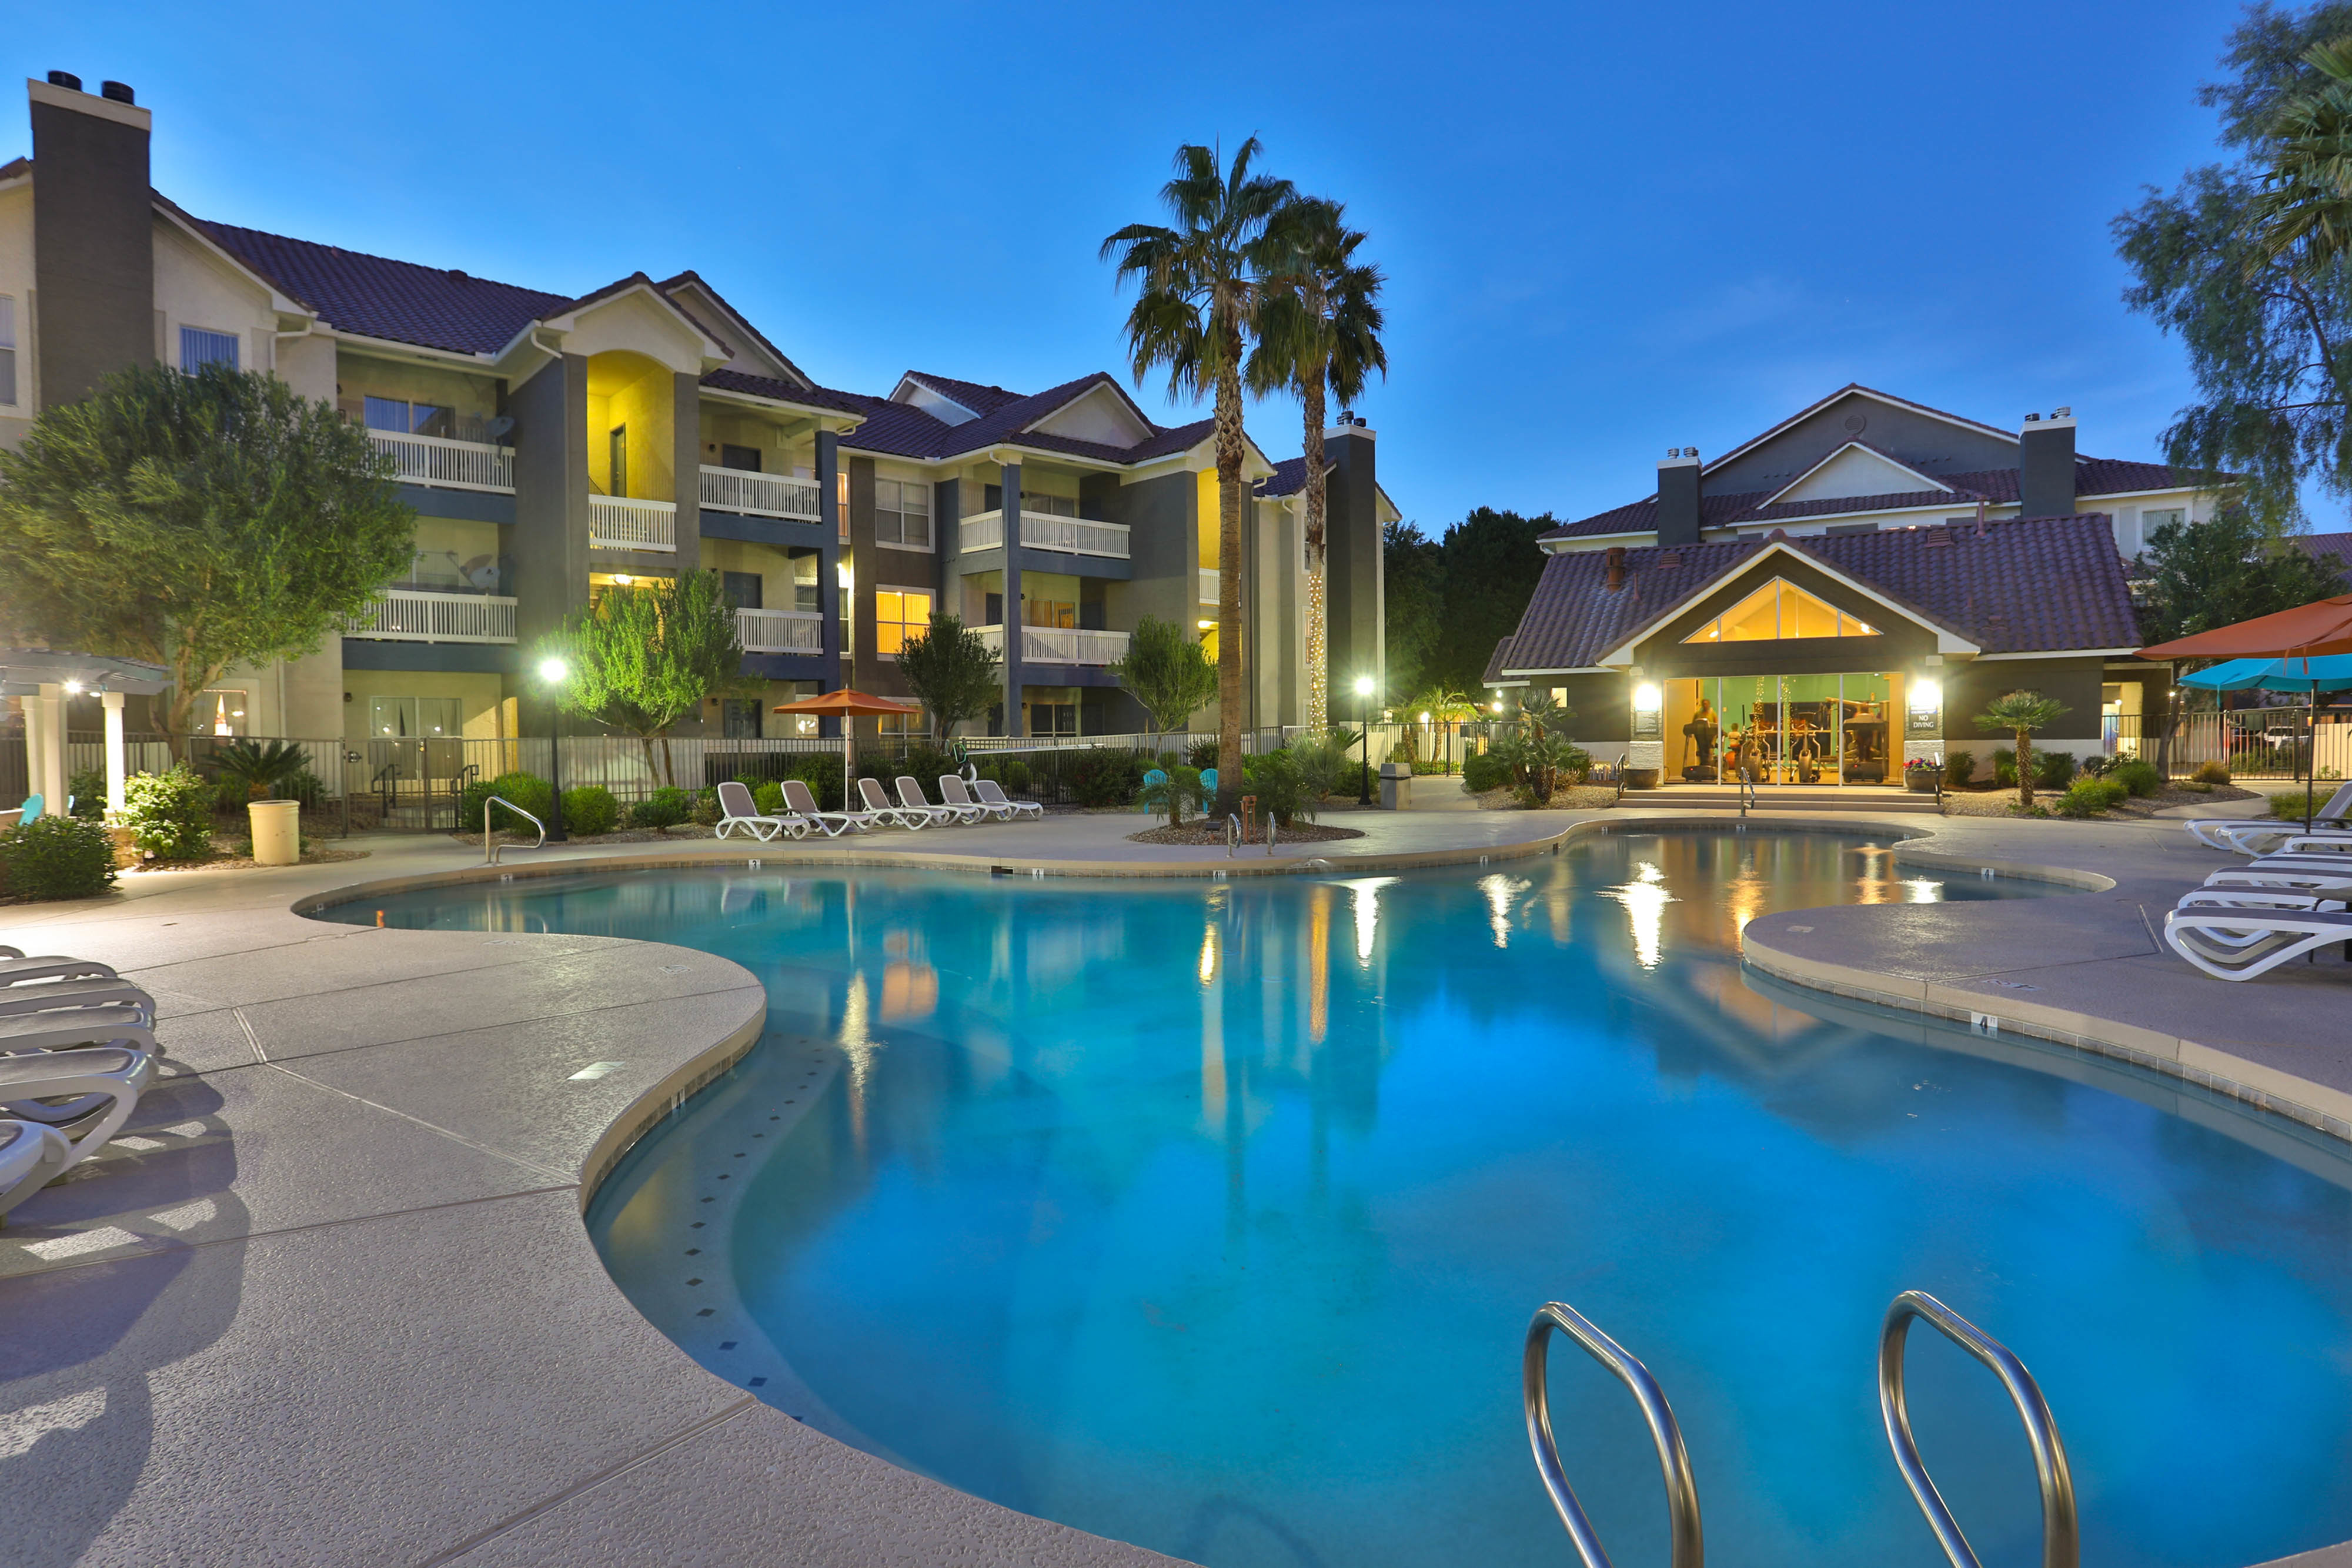 Swimming Pool | Apartment Homes in Phoenix, AZ | Arboretum at South Mountain